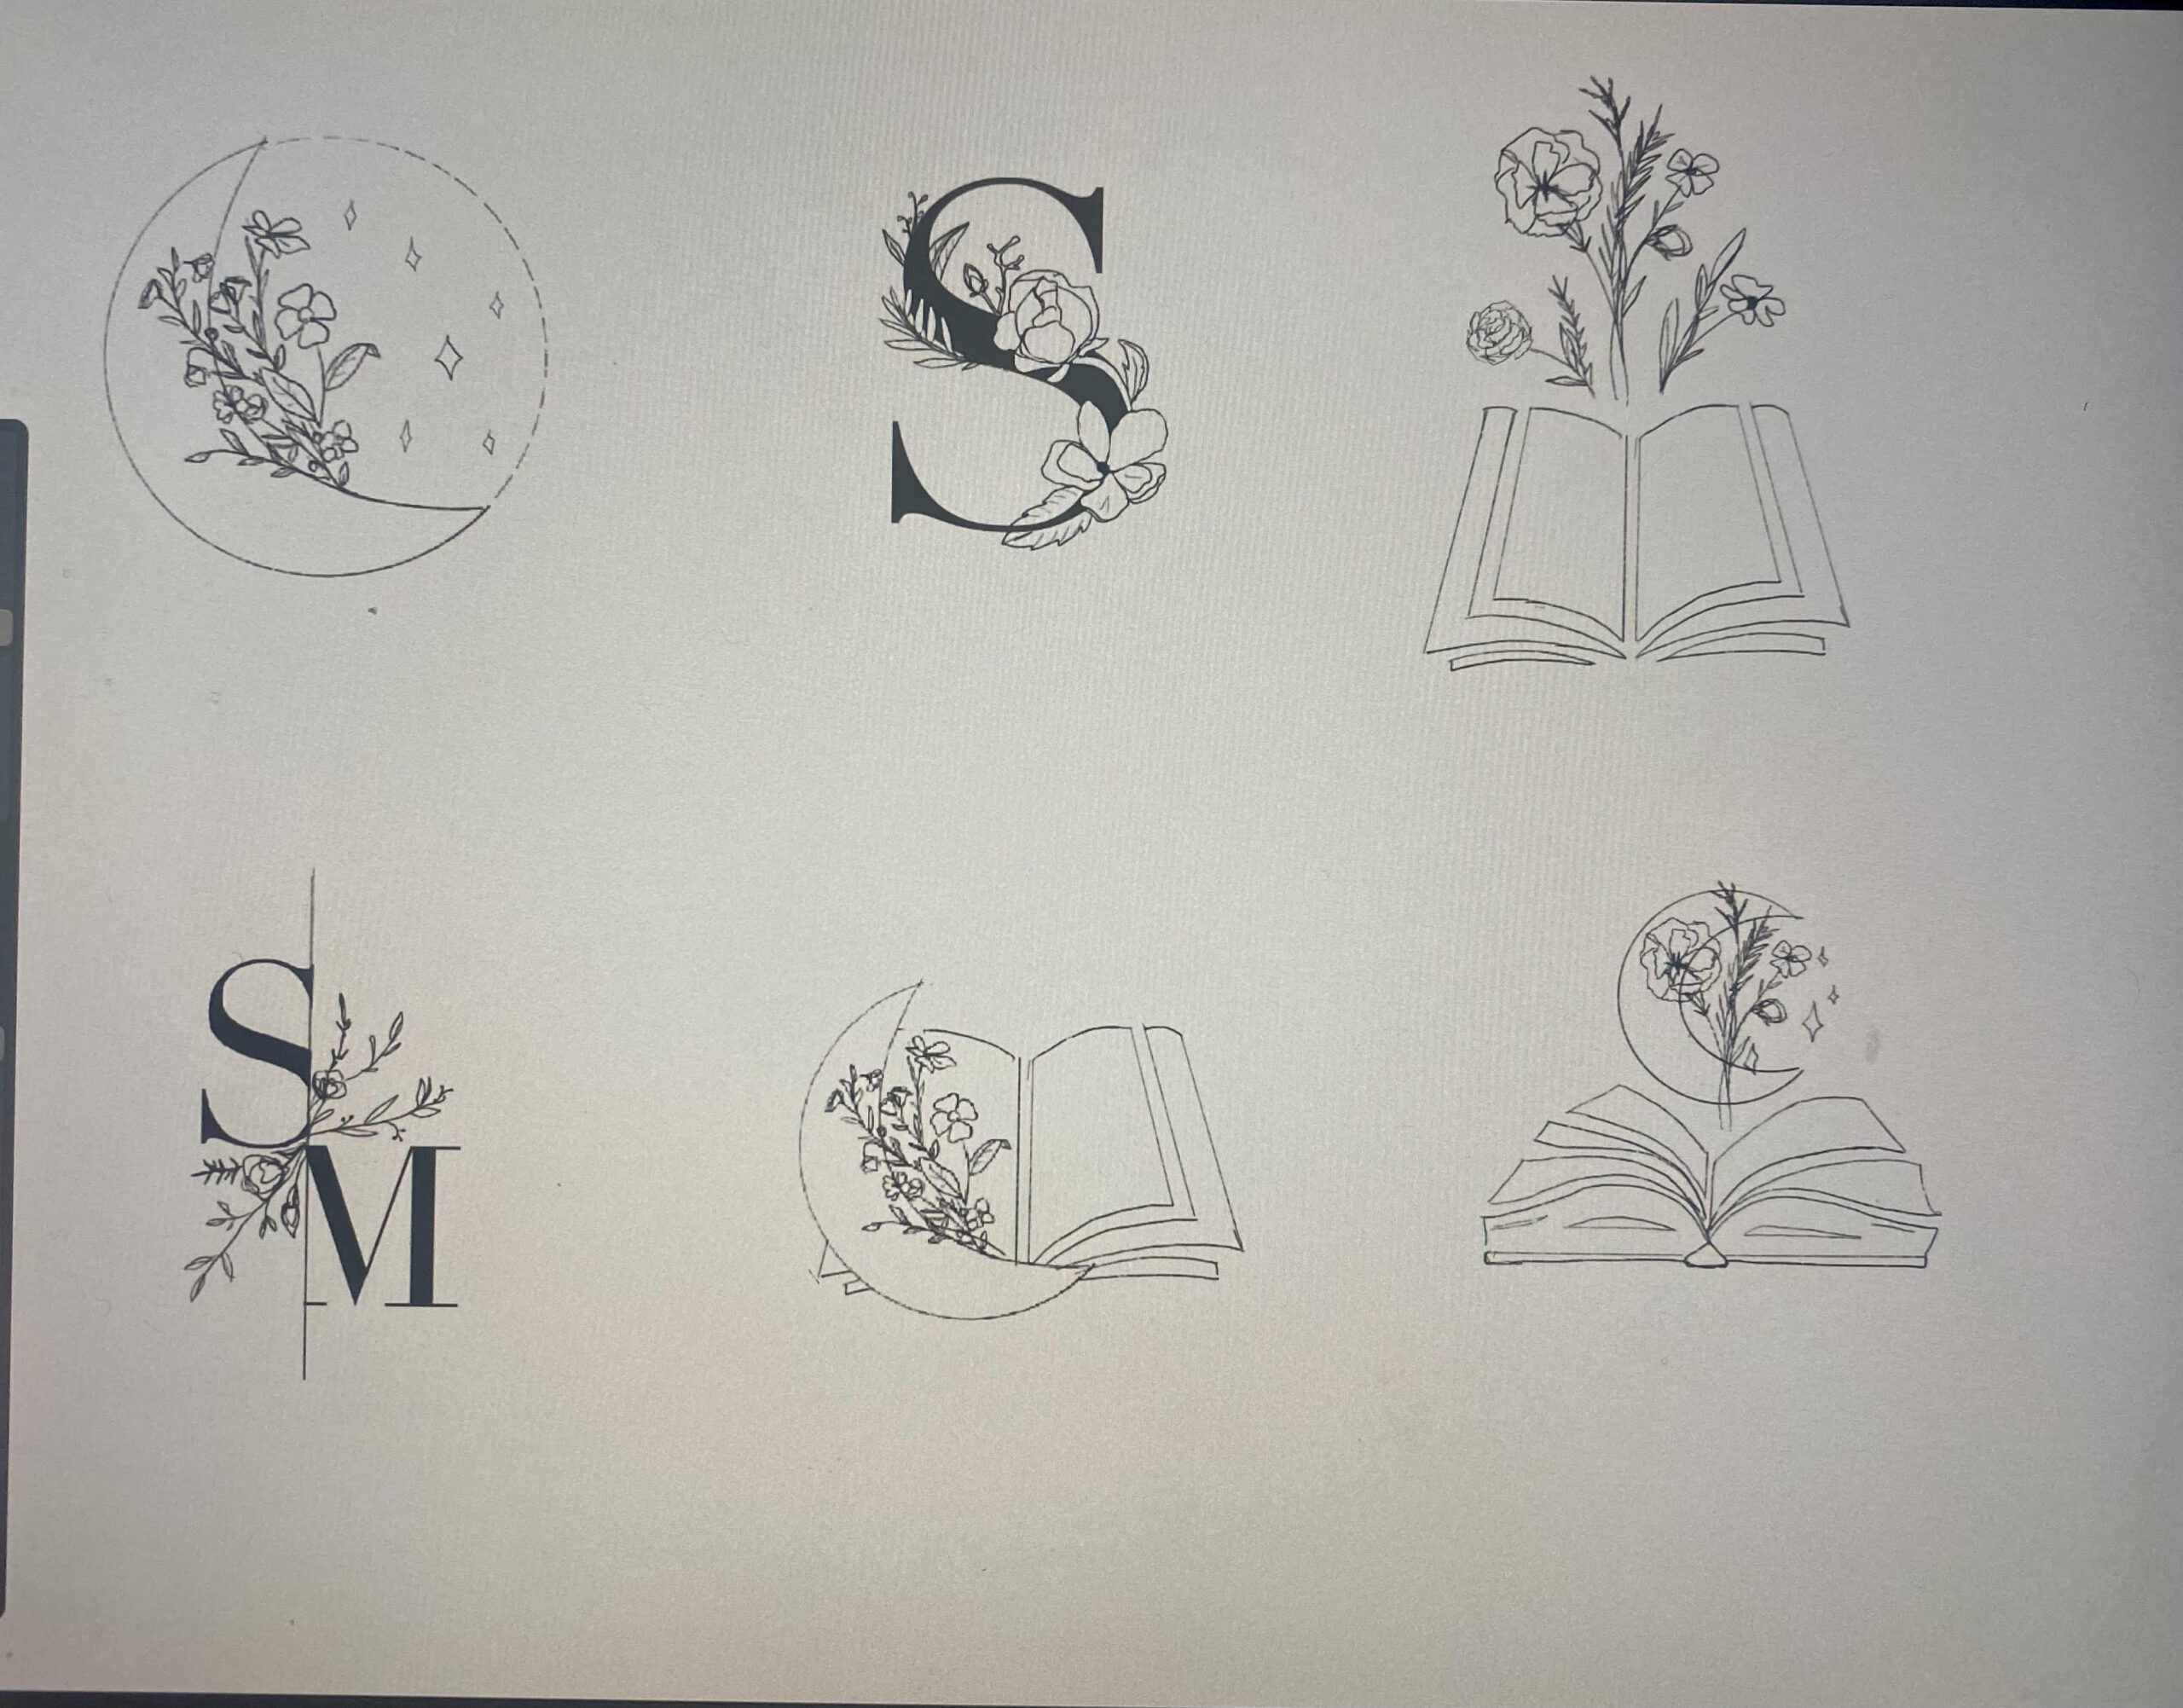 black and white image of six different sketches of the logo design.